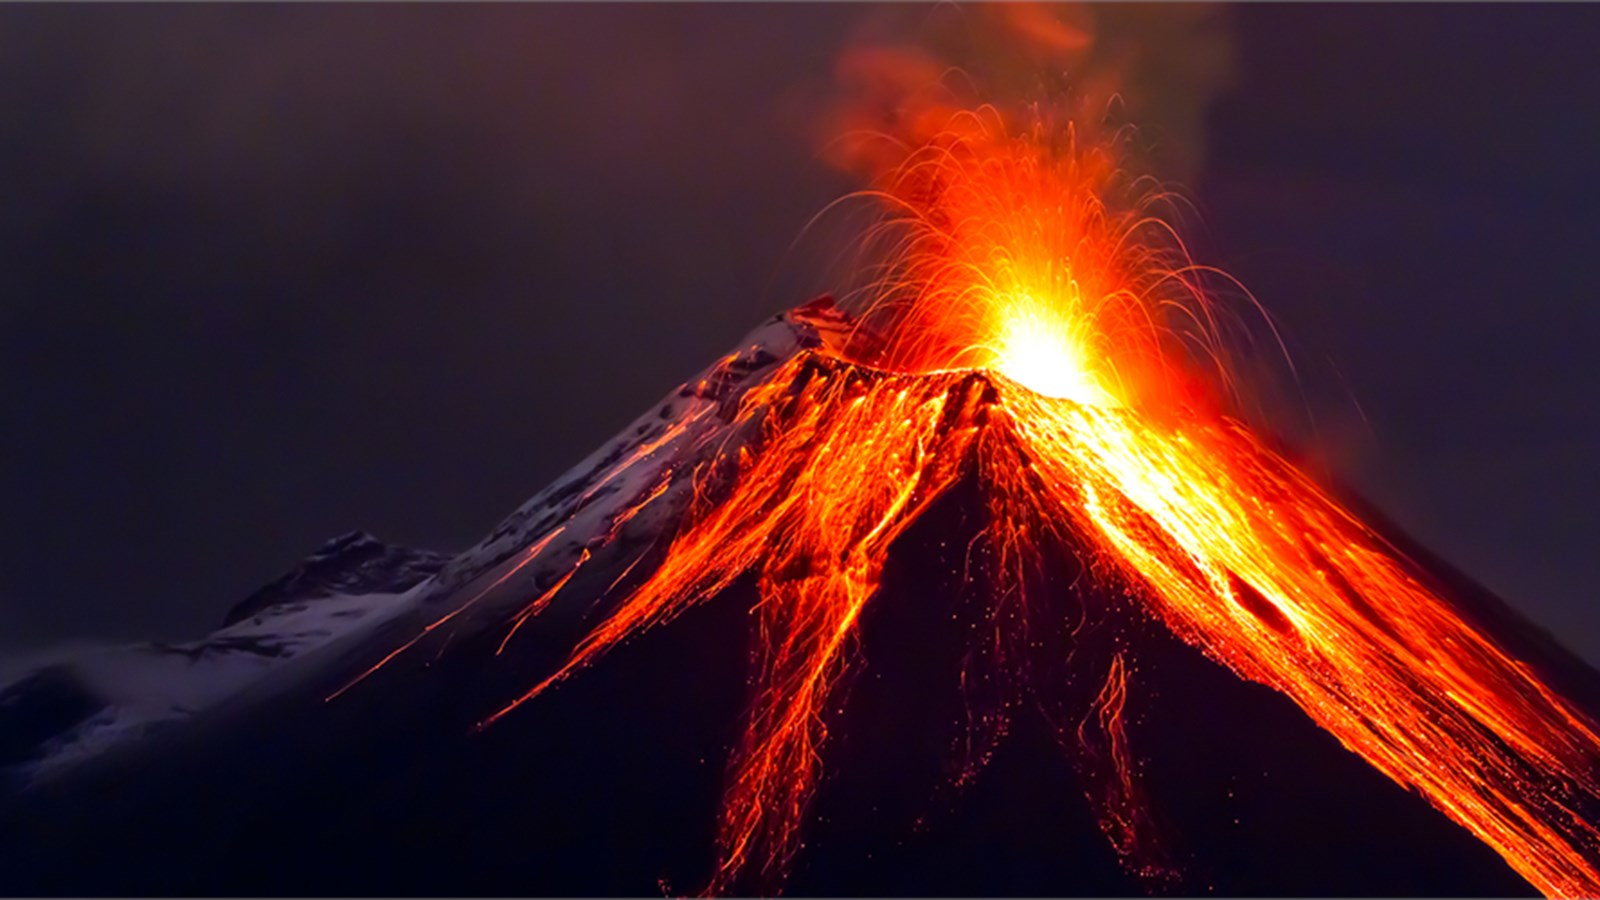 Kilauea Volcano Of 600 000 Years In Hawaii Has Been Erupting Since That Caused 1 500 People